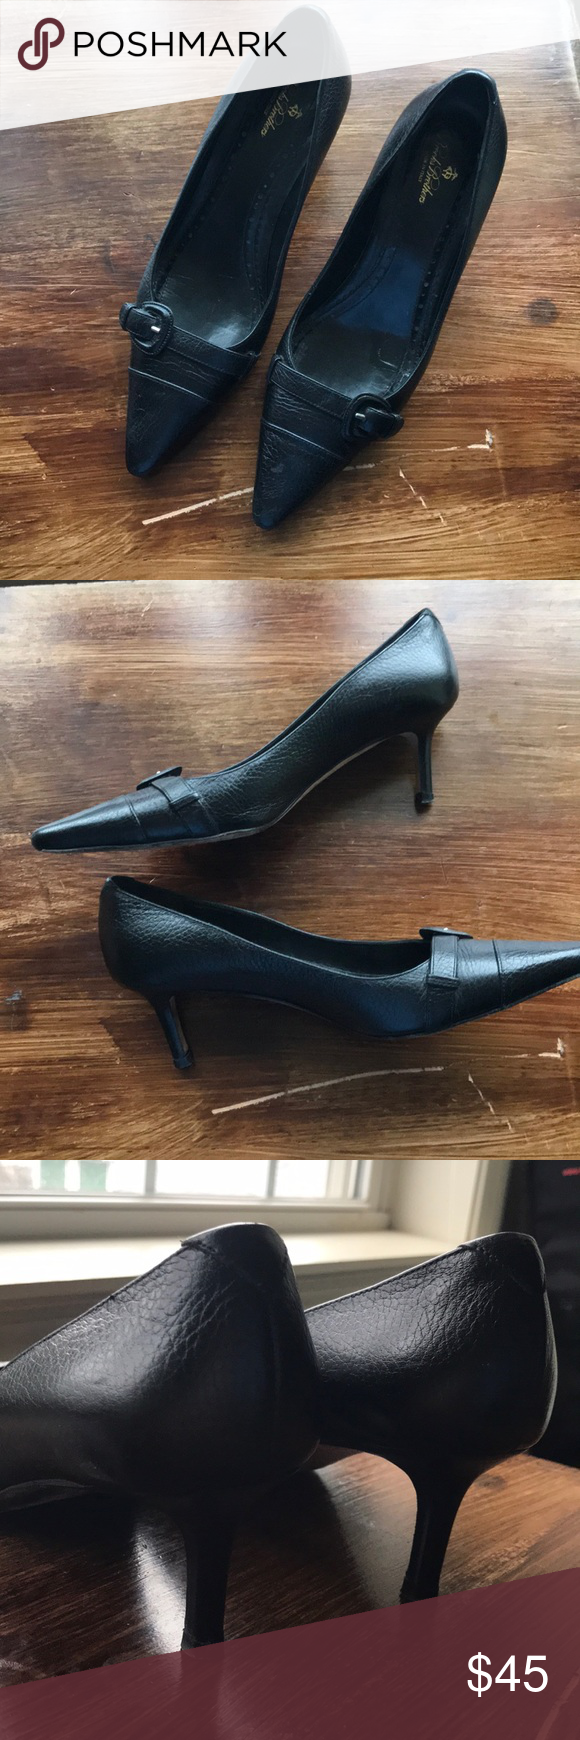 0e5b81804be Brooks Brothers black leather with kitten heel GUC. Wear on soles (see  photos) but overall great condition. Leather upper